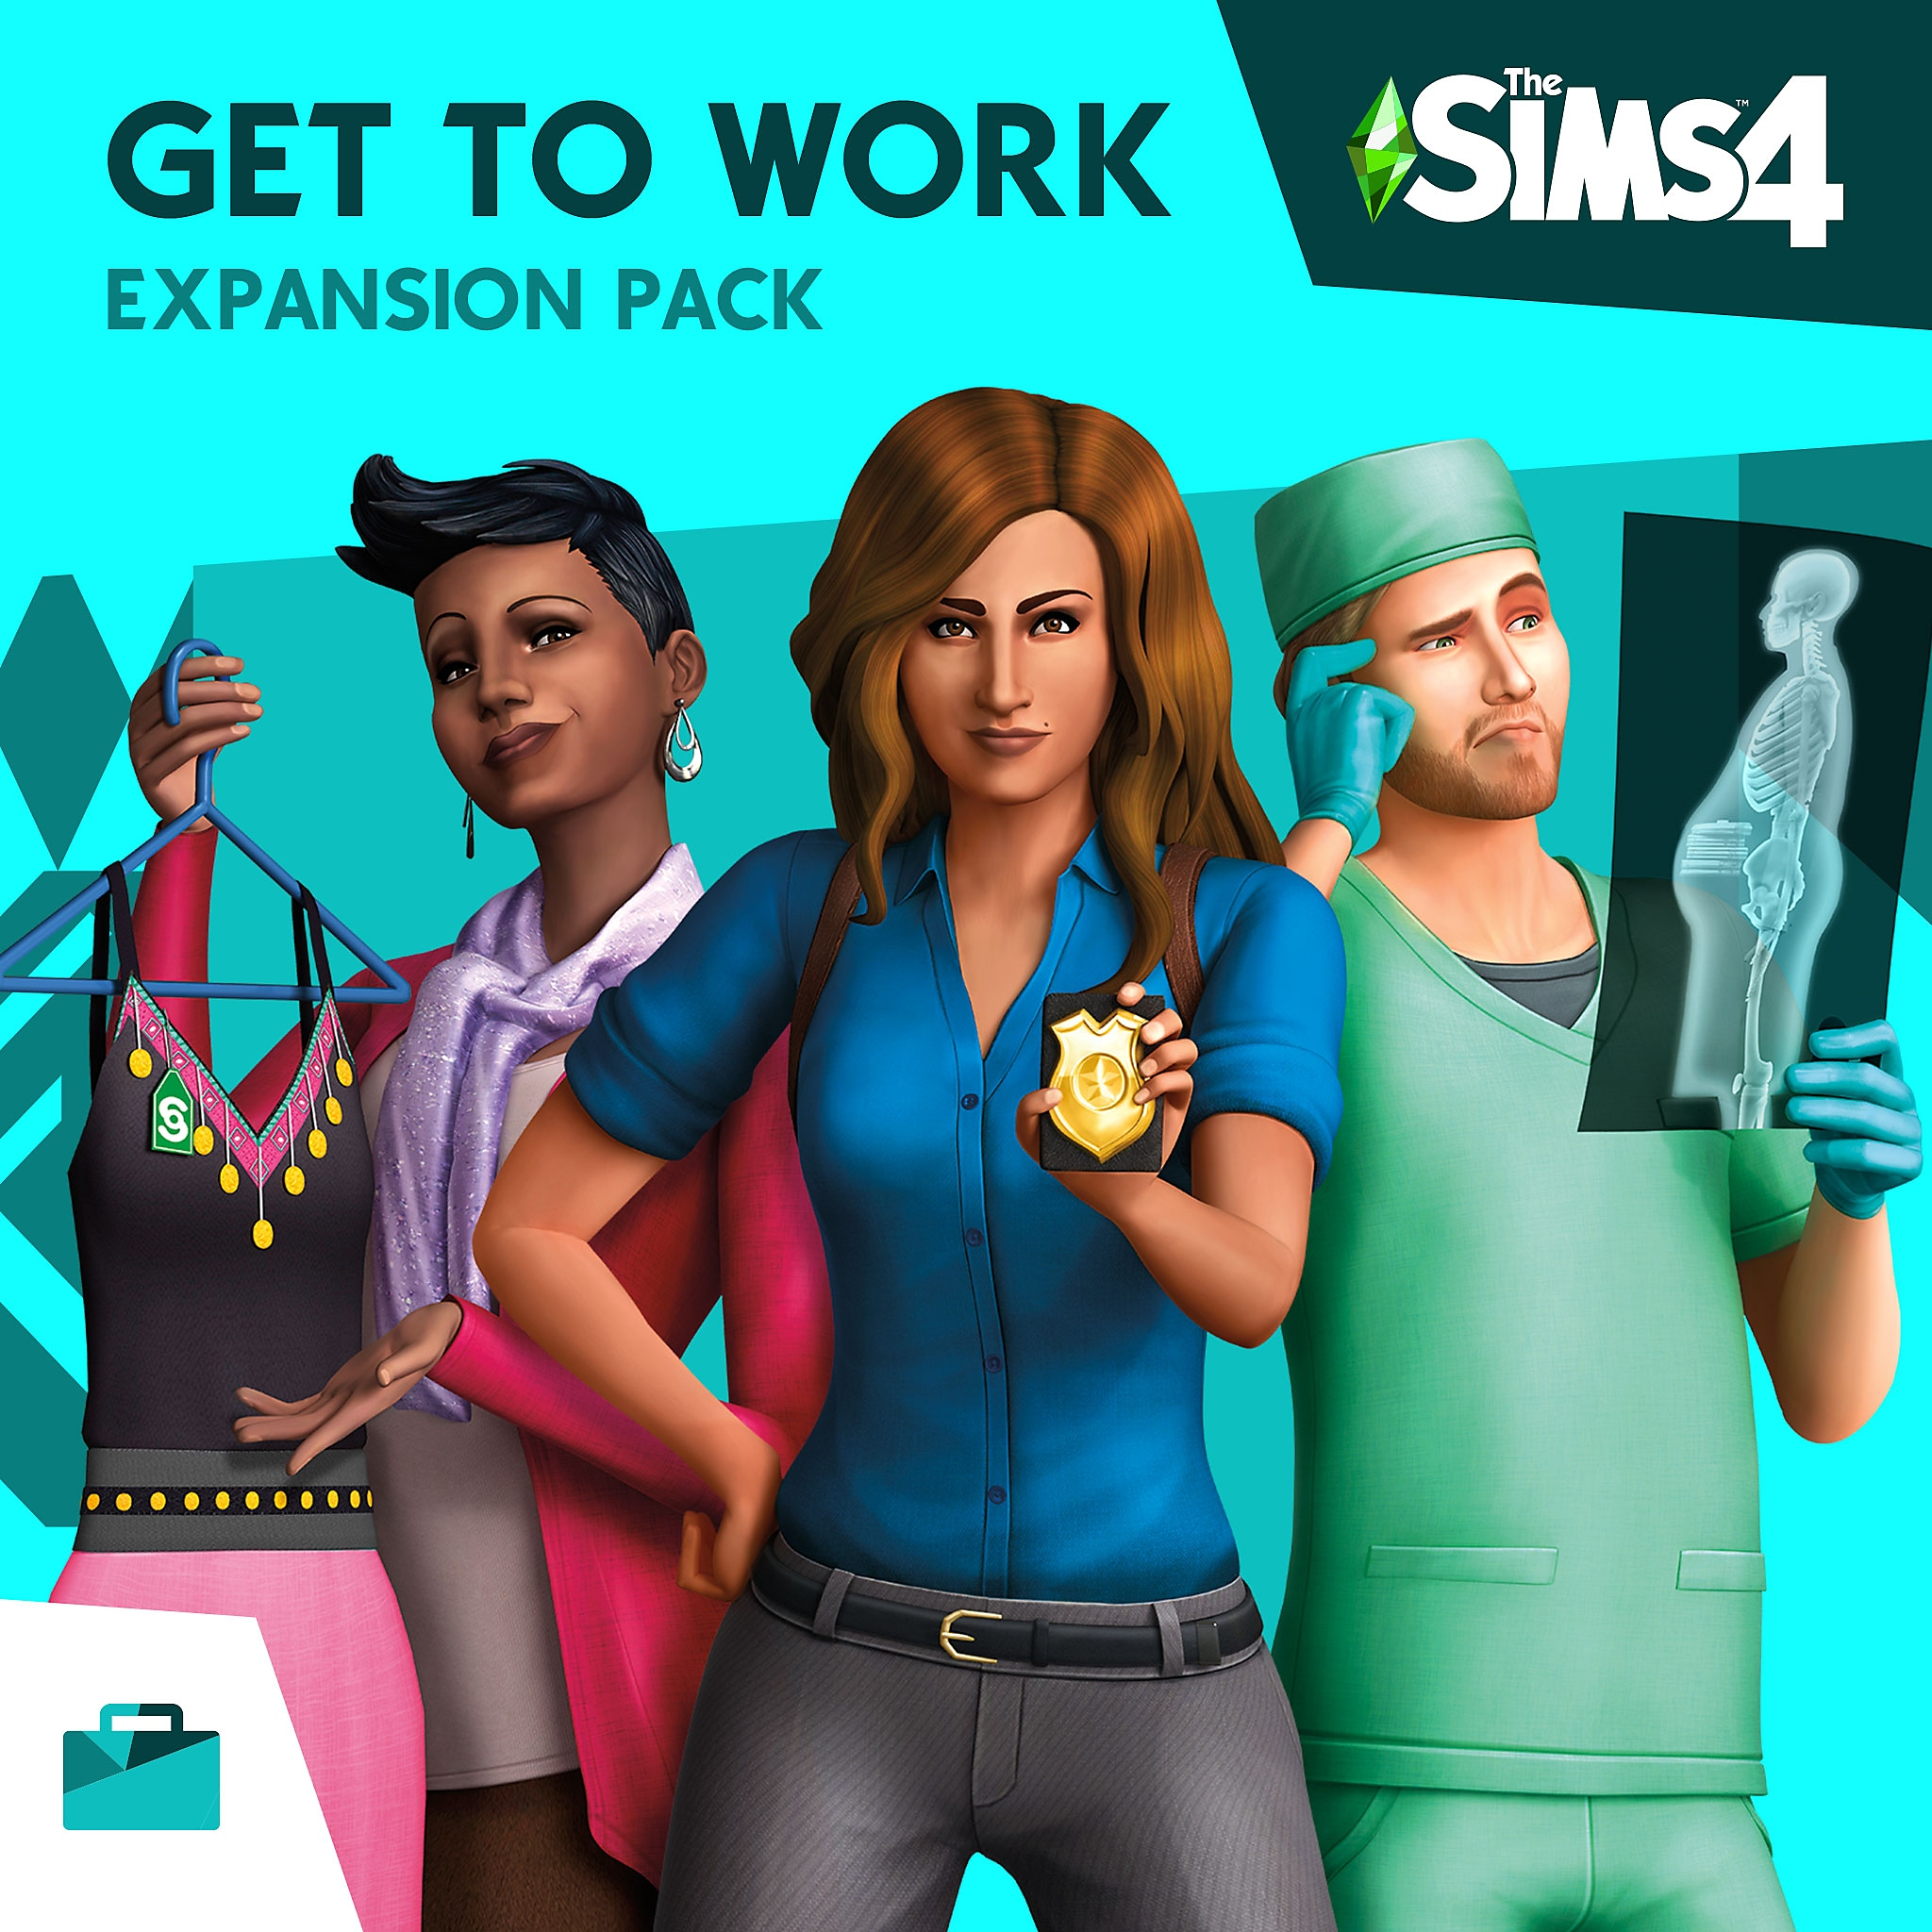 Get To Work Expansion Pack